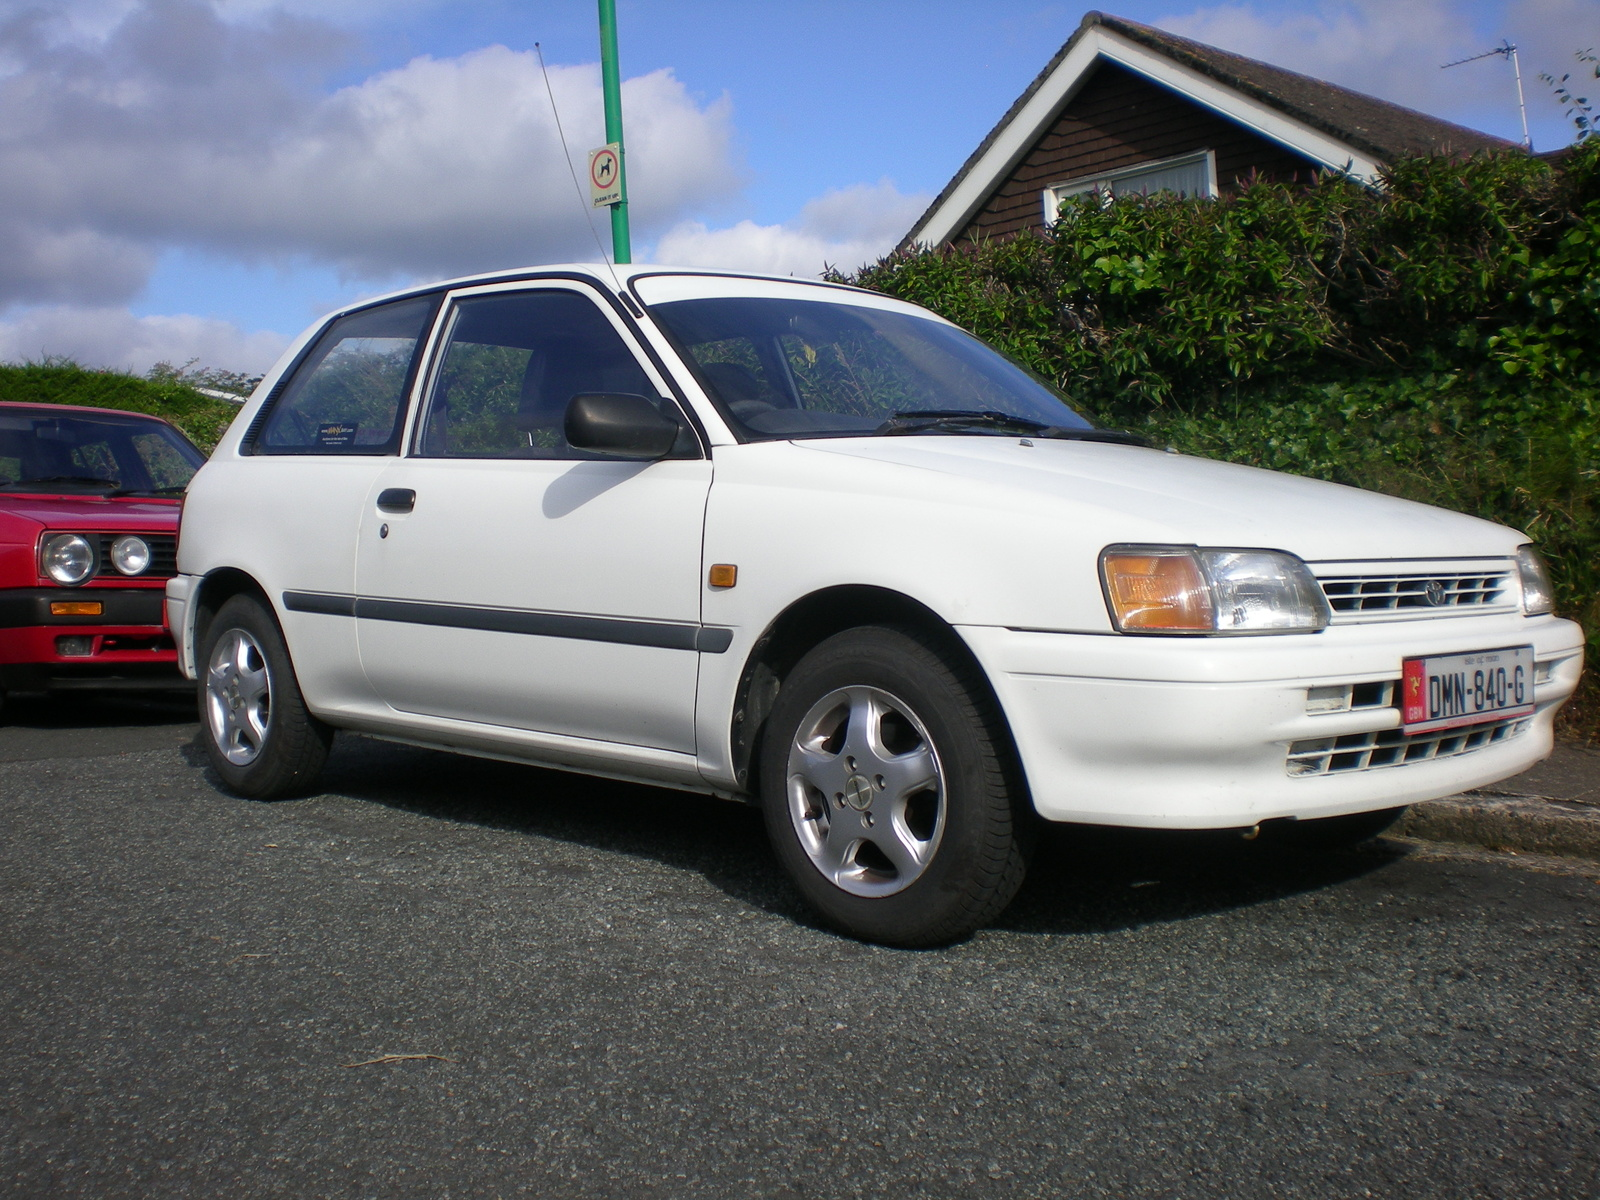 Toyota Starlet 1999 photo - 4